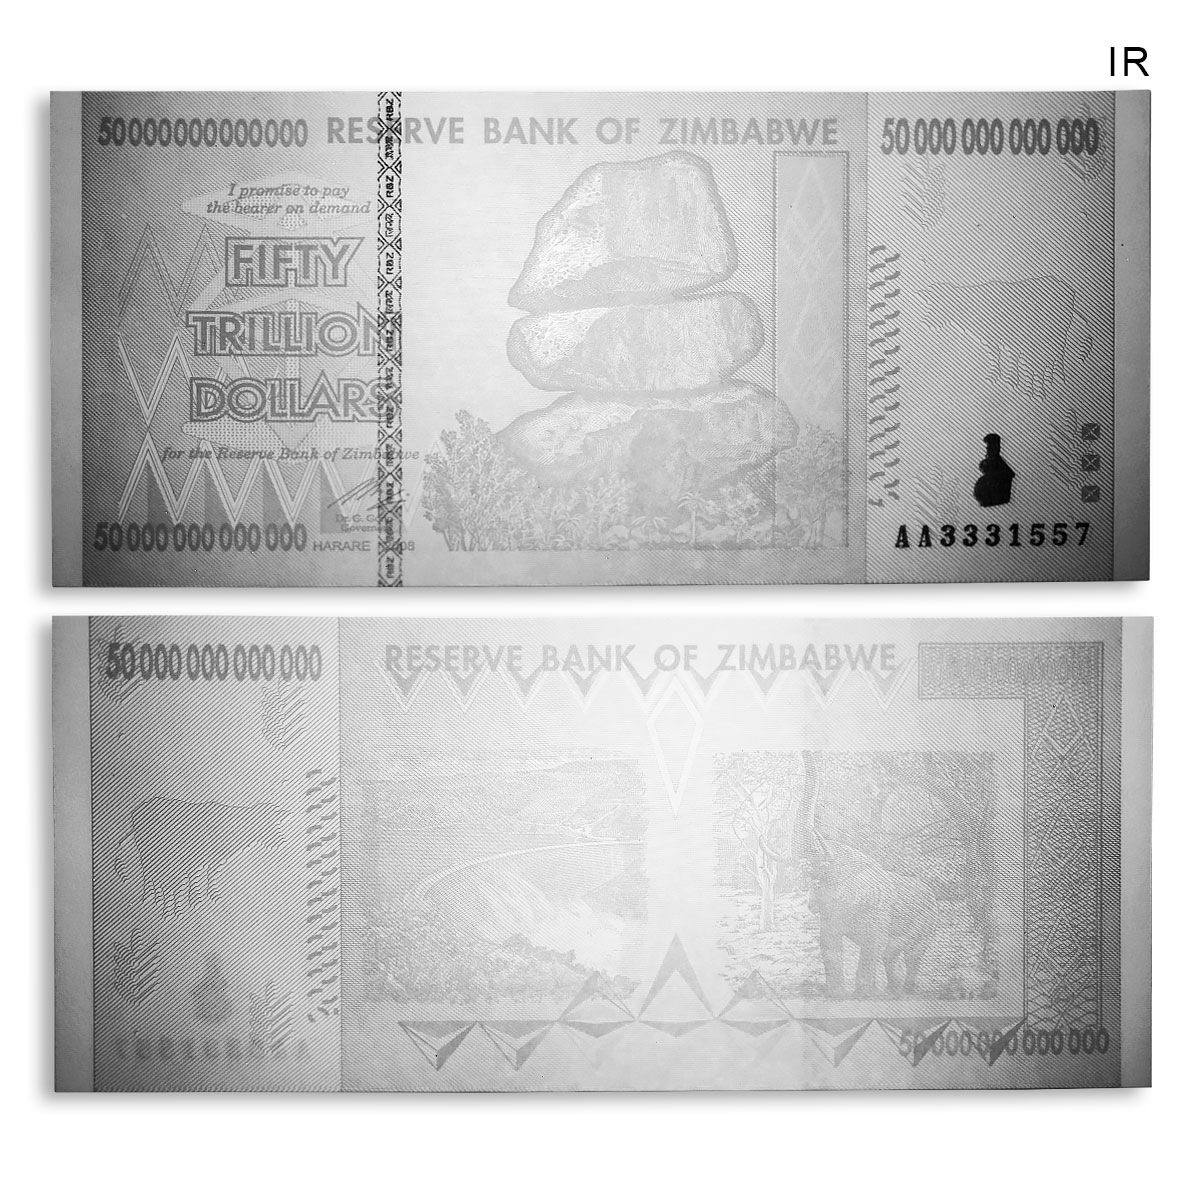 ZIMBABWE 50 TRILLION DOLLARS AA Series BANKNOTE CURRENCY UNCIRCULATED 2008